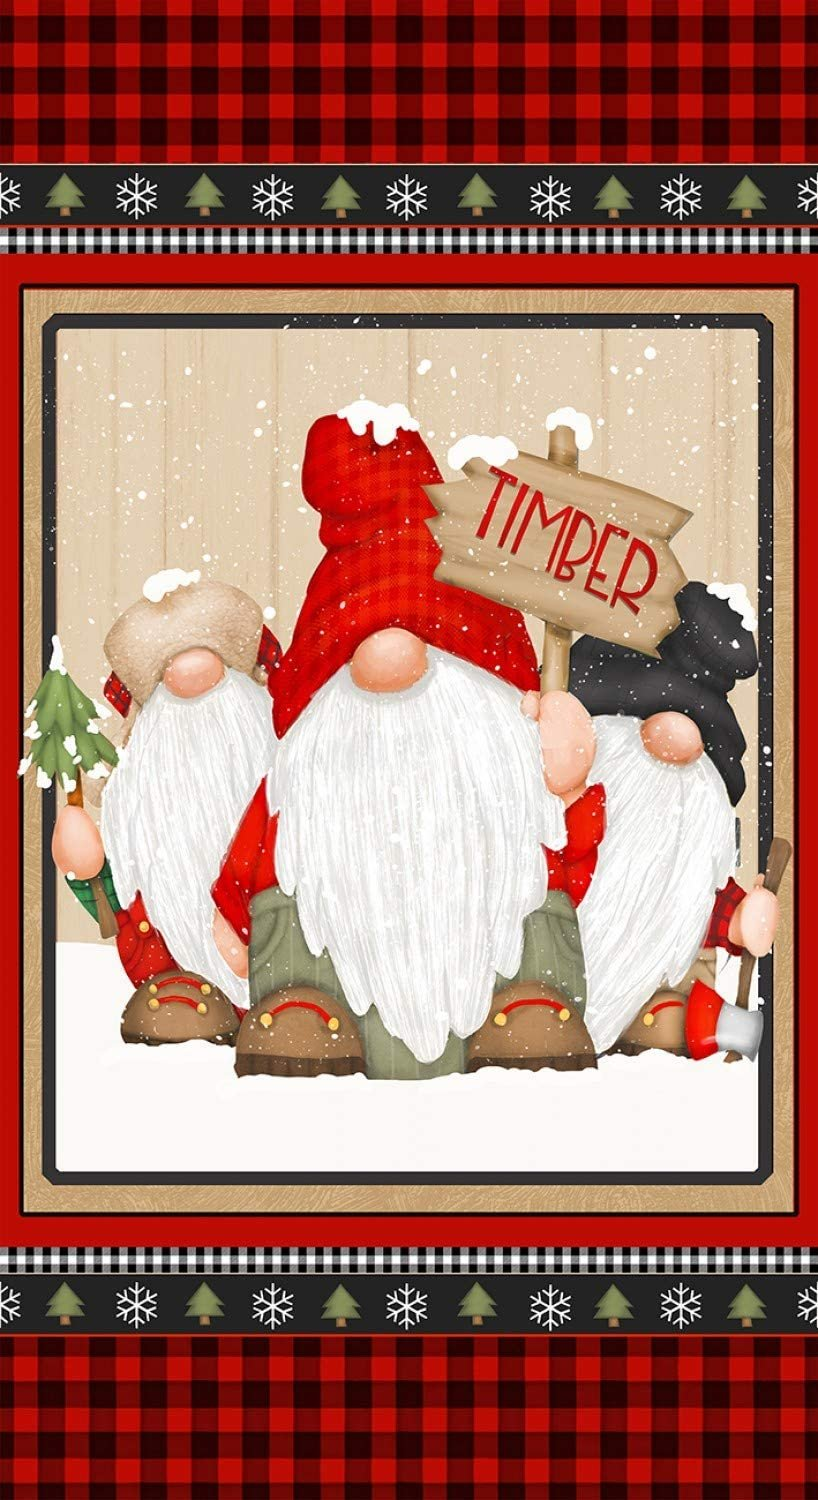 Timber Gnomies for Henry Glass by Shelly Comiskey - Gnome Panel Red/Black